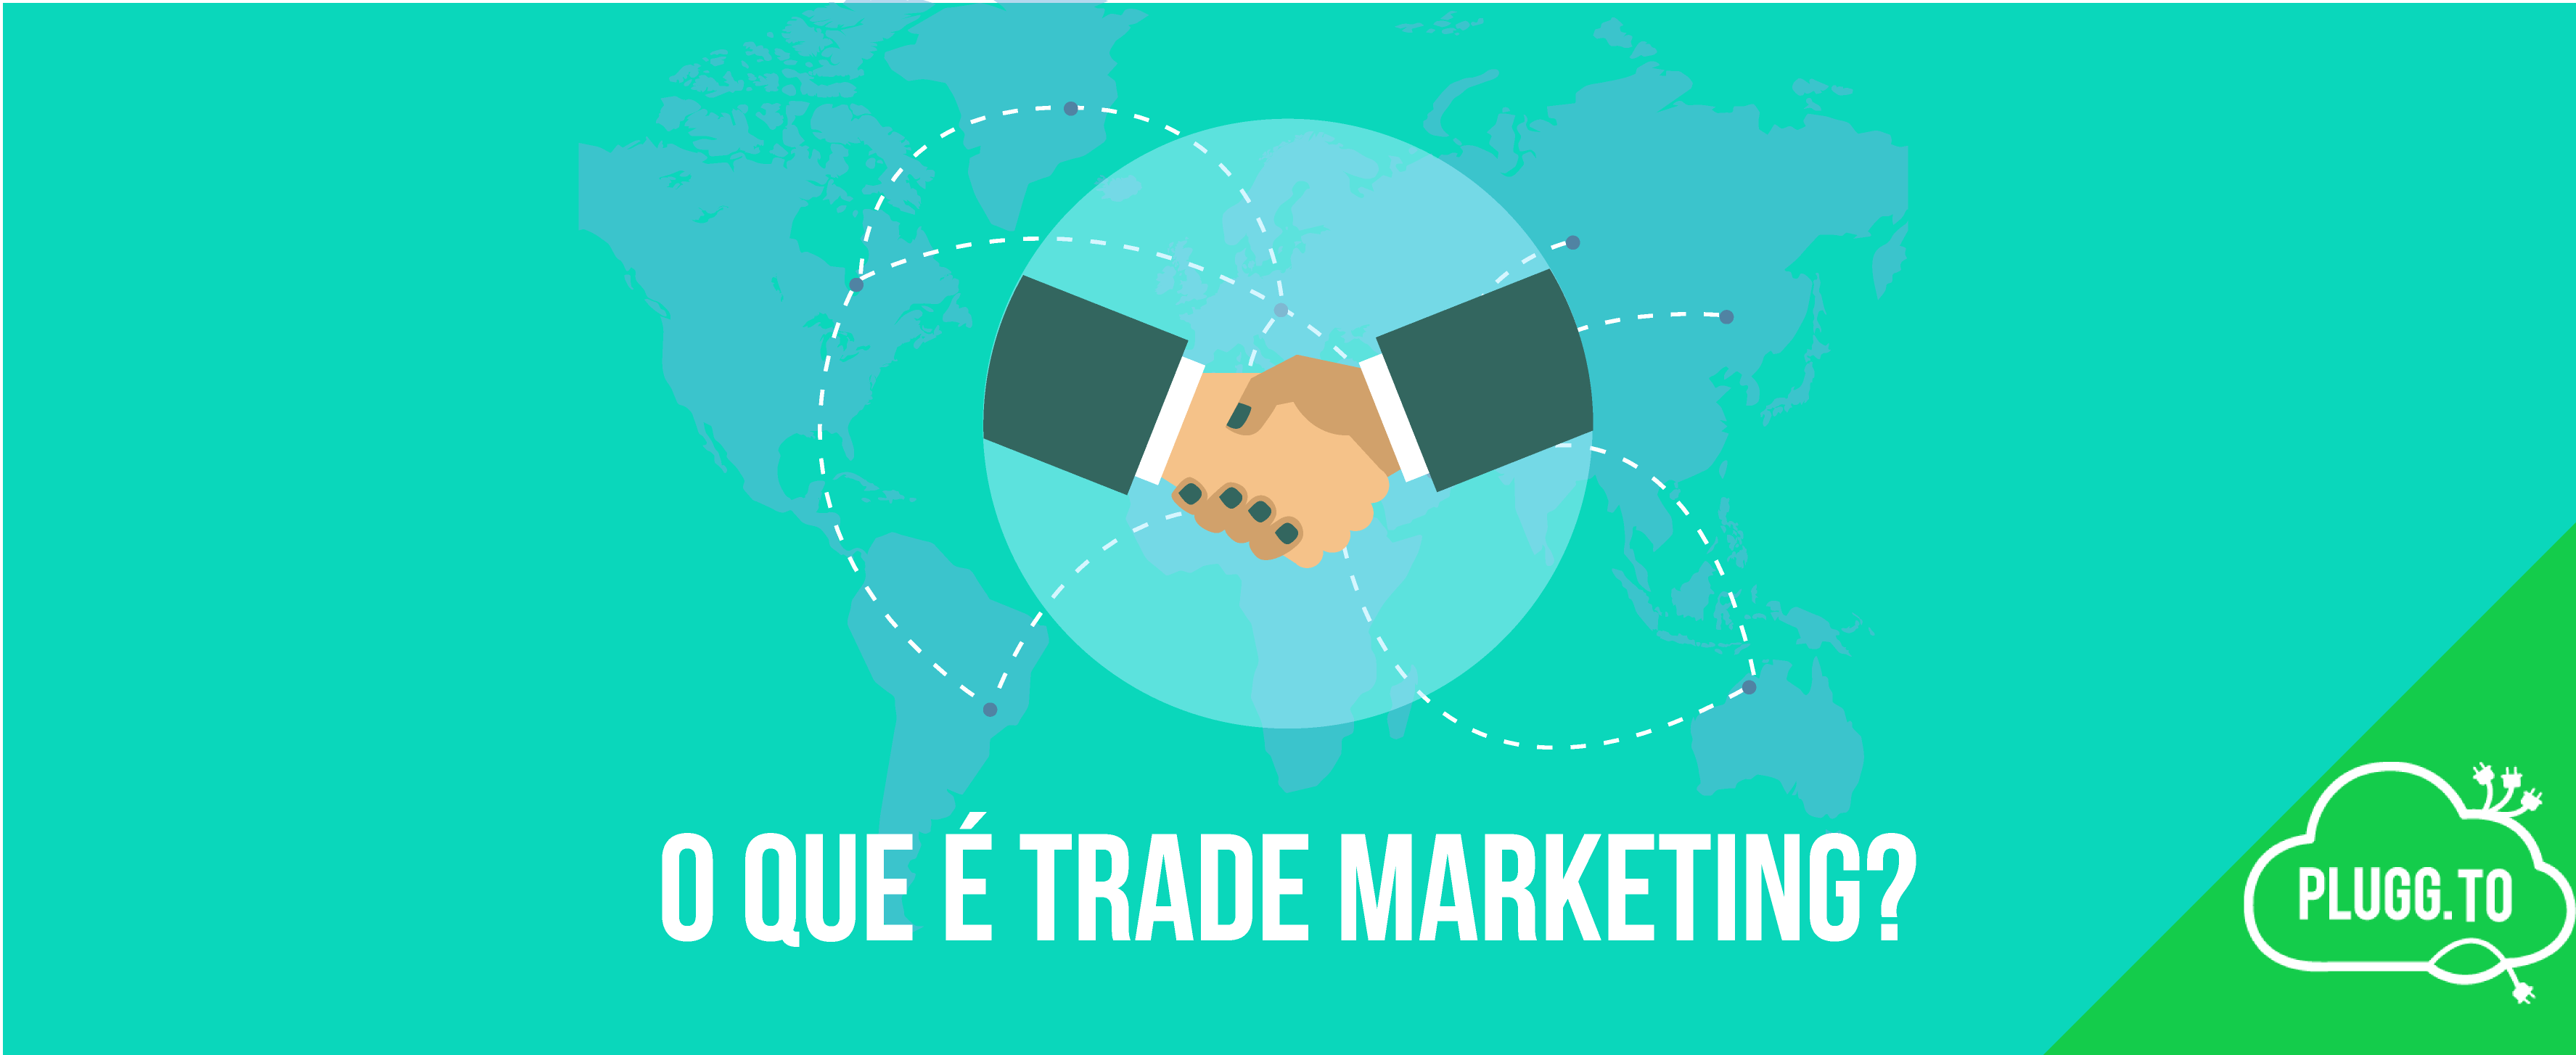 O que é Trade Marketing?